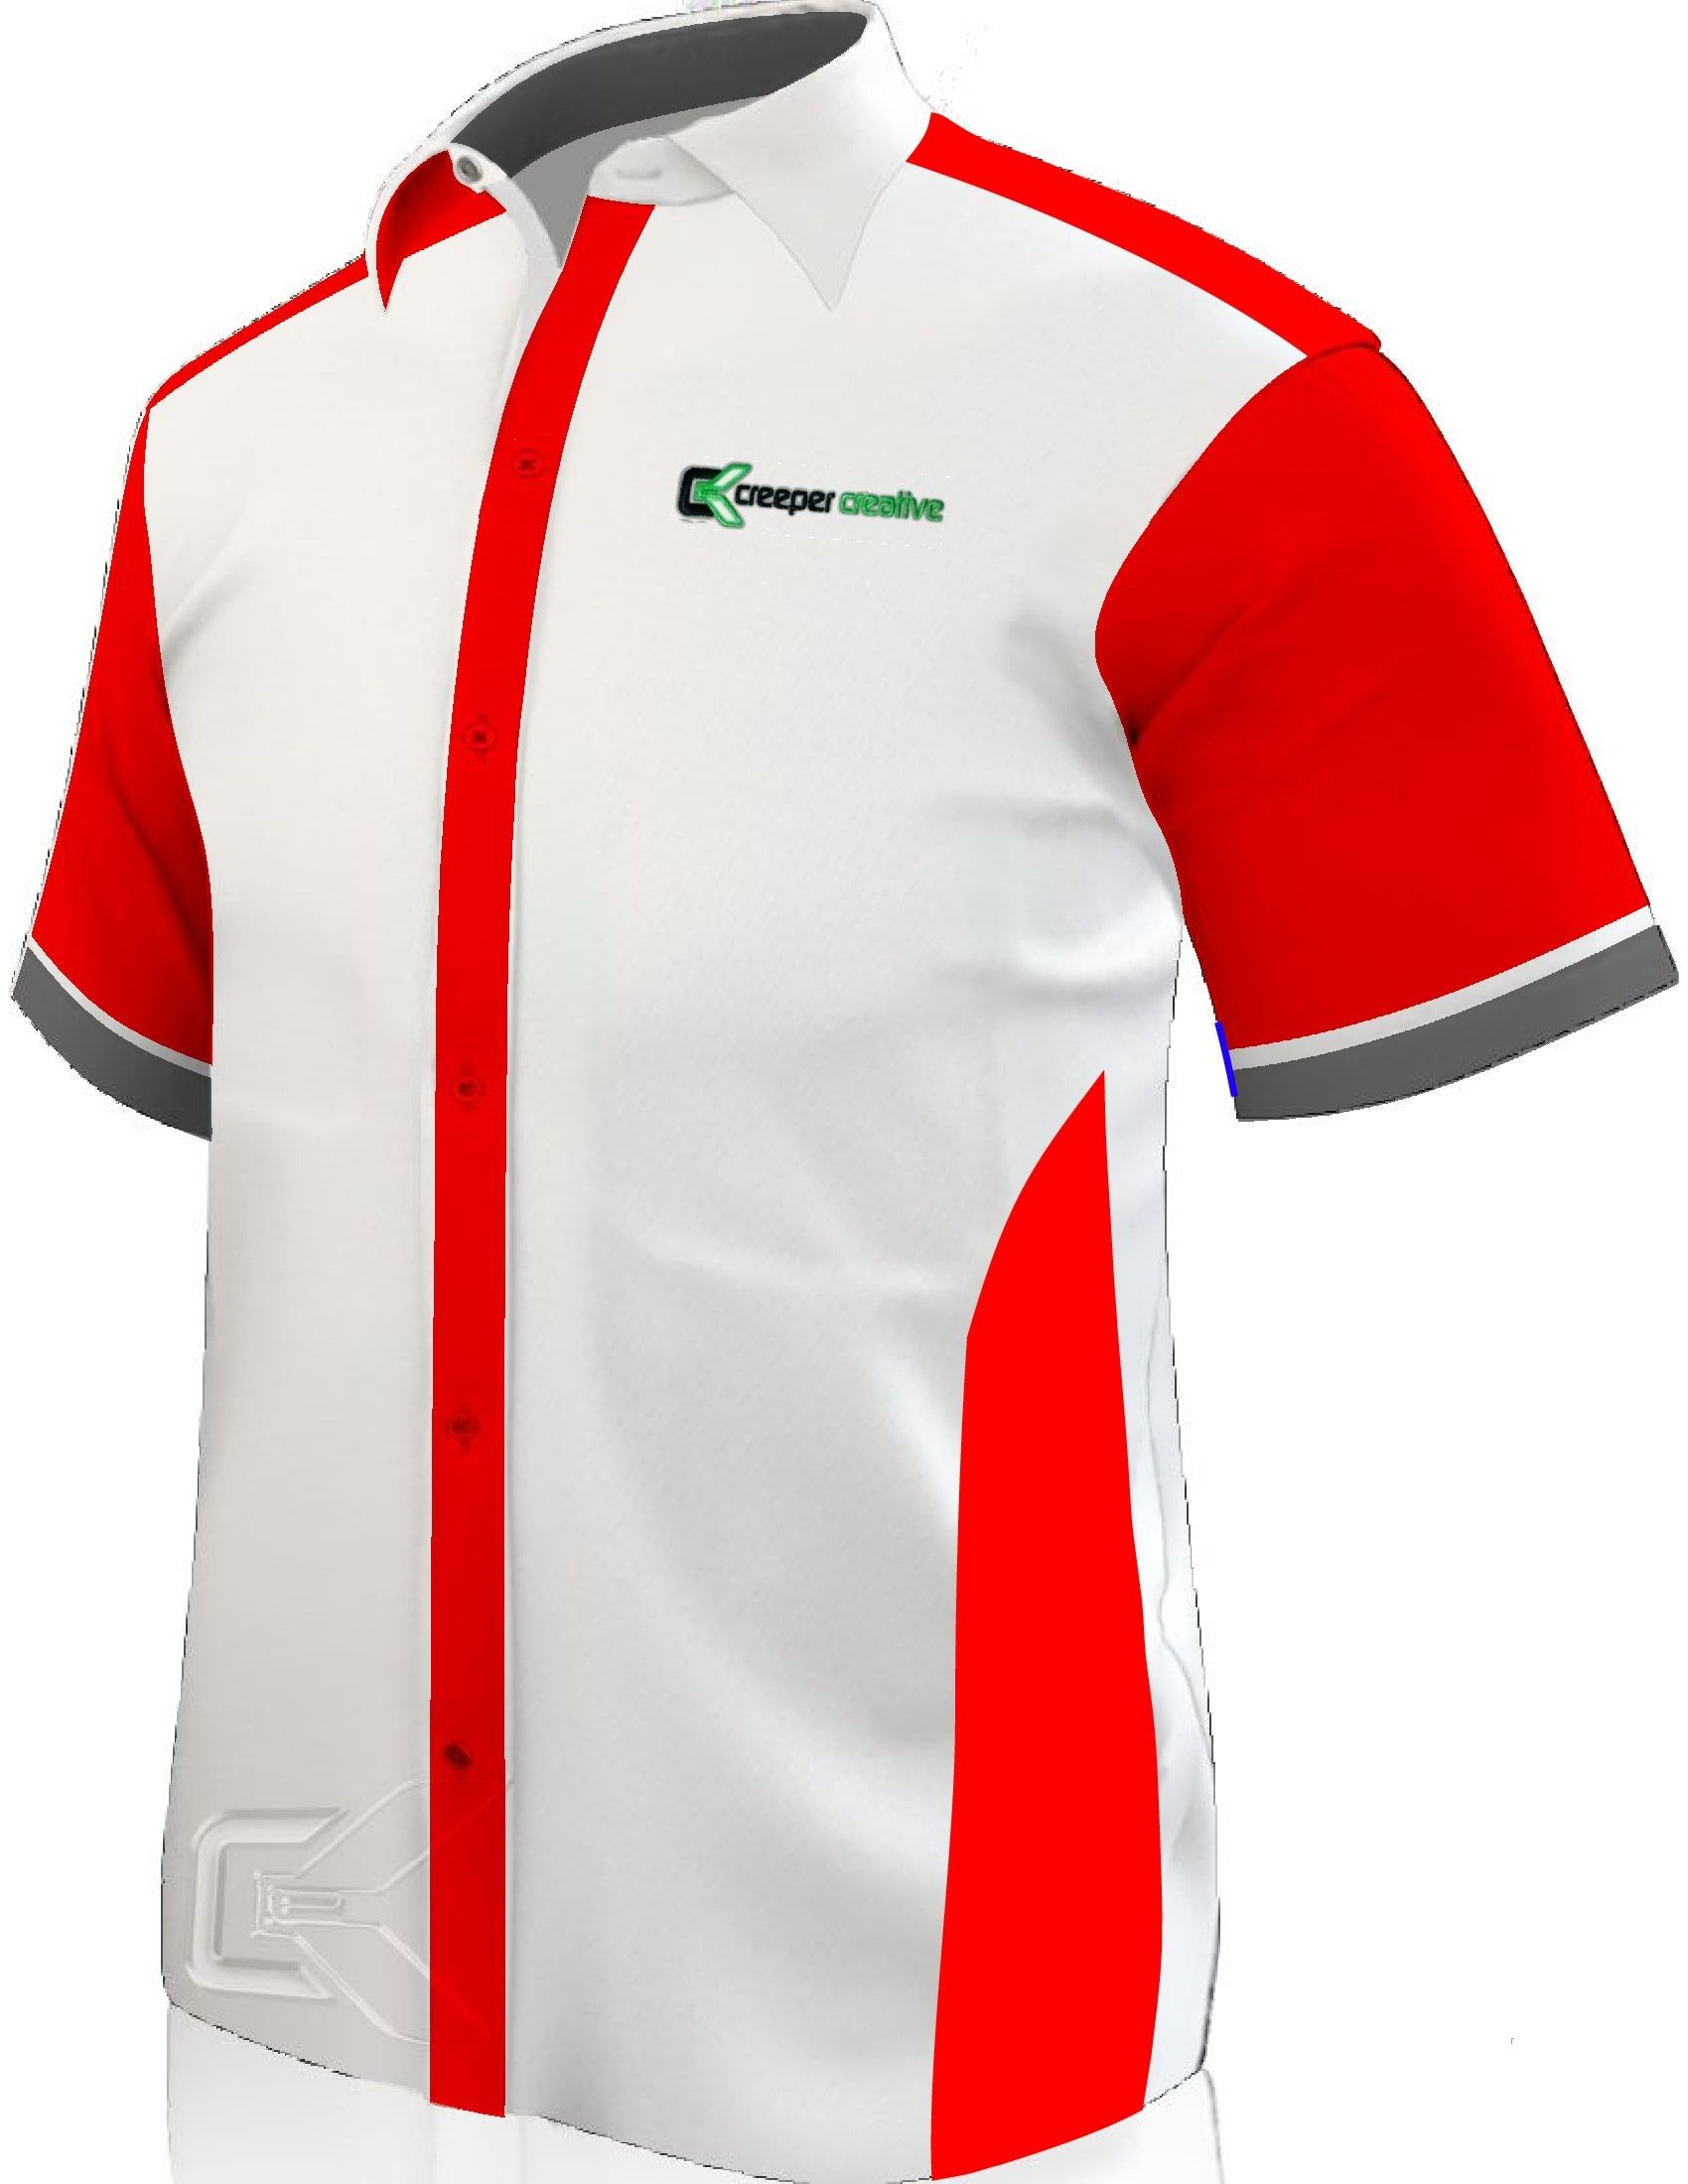 dfc6ead67 Here you can find your favourite F1 shirts   Tops from your team and  driver. Honda Official 2017. cr®eepe®c®eative ™